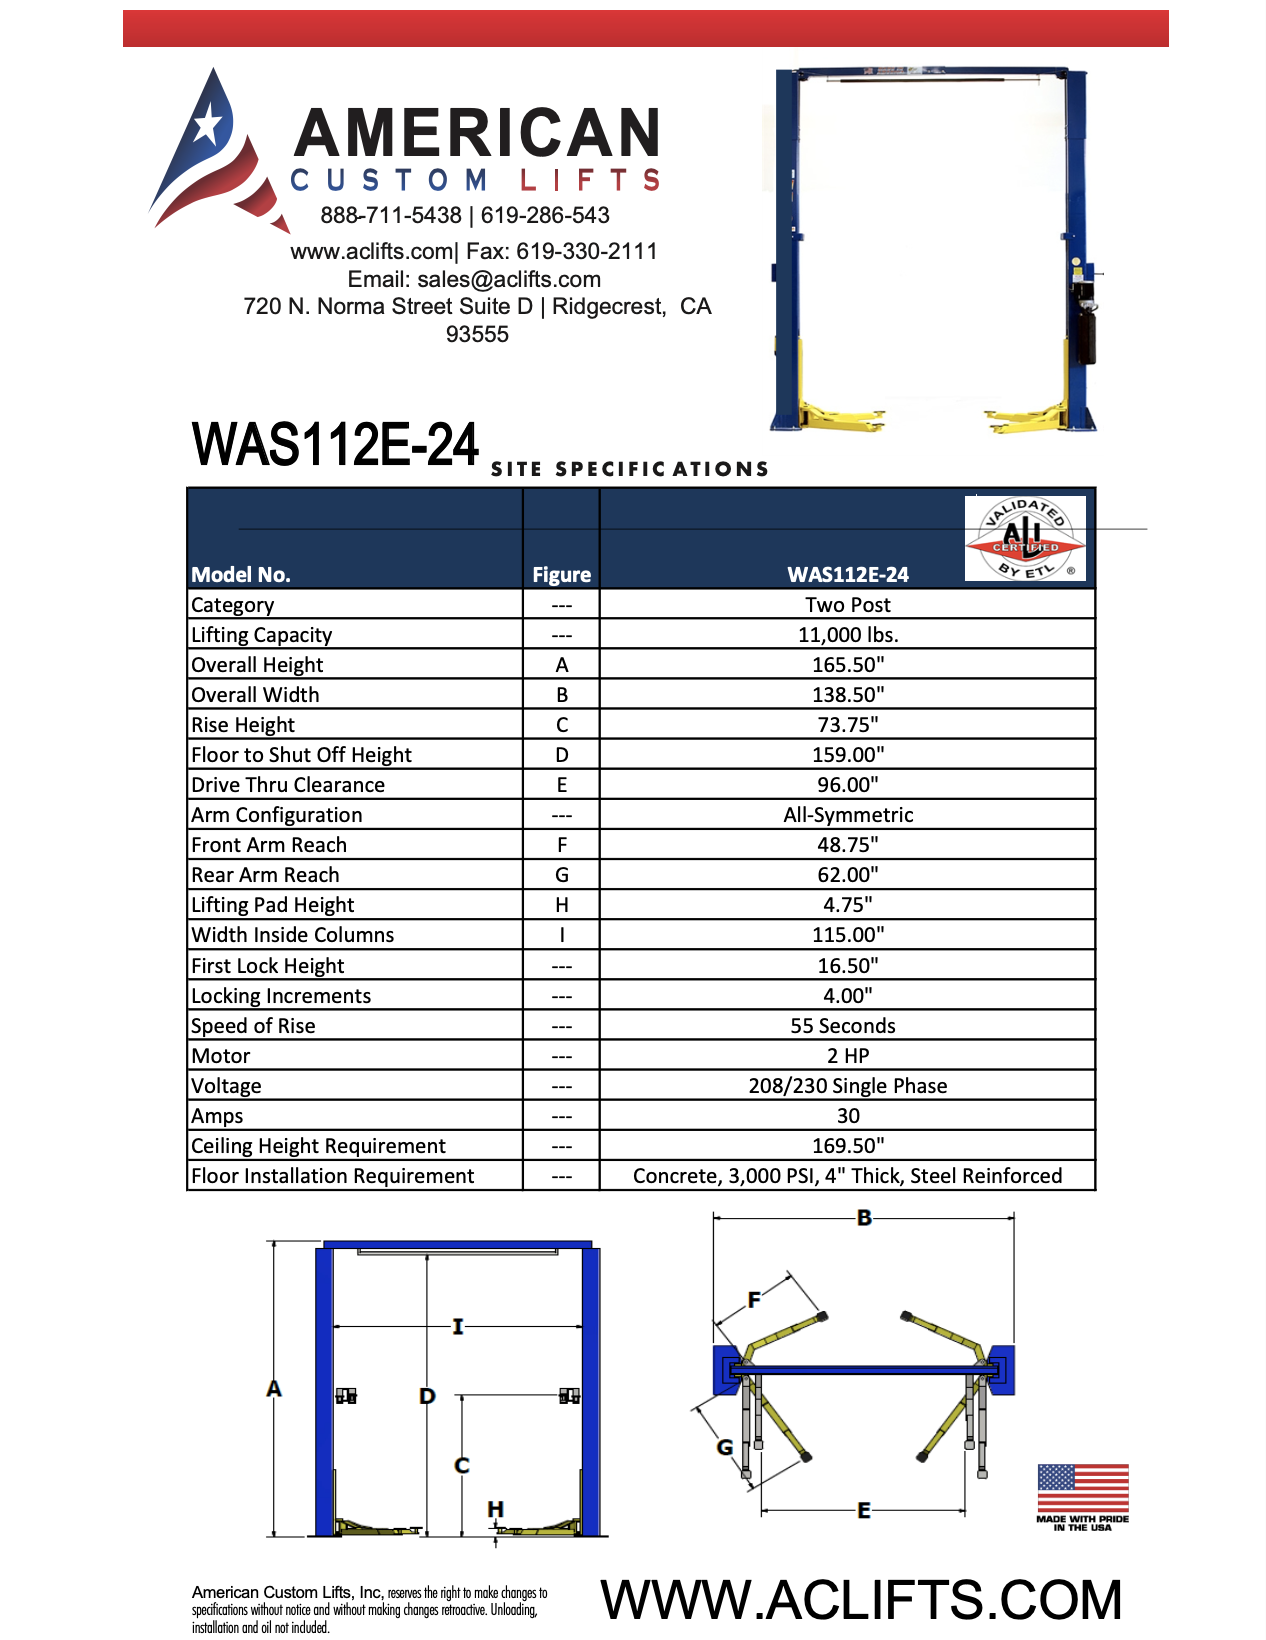 WAS112E-24 v1 Ex-Tall Two Post Automotive Lift Specifications